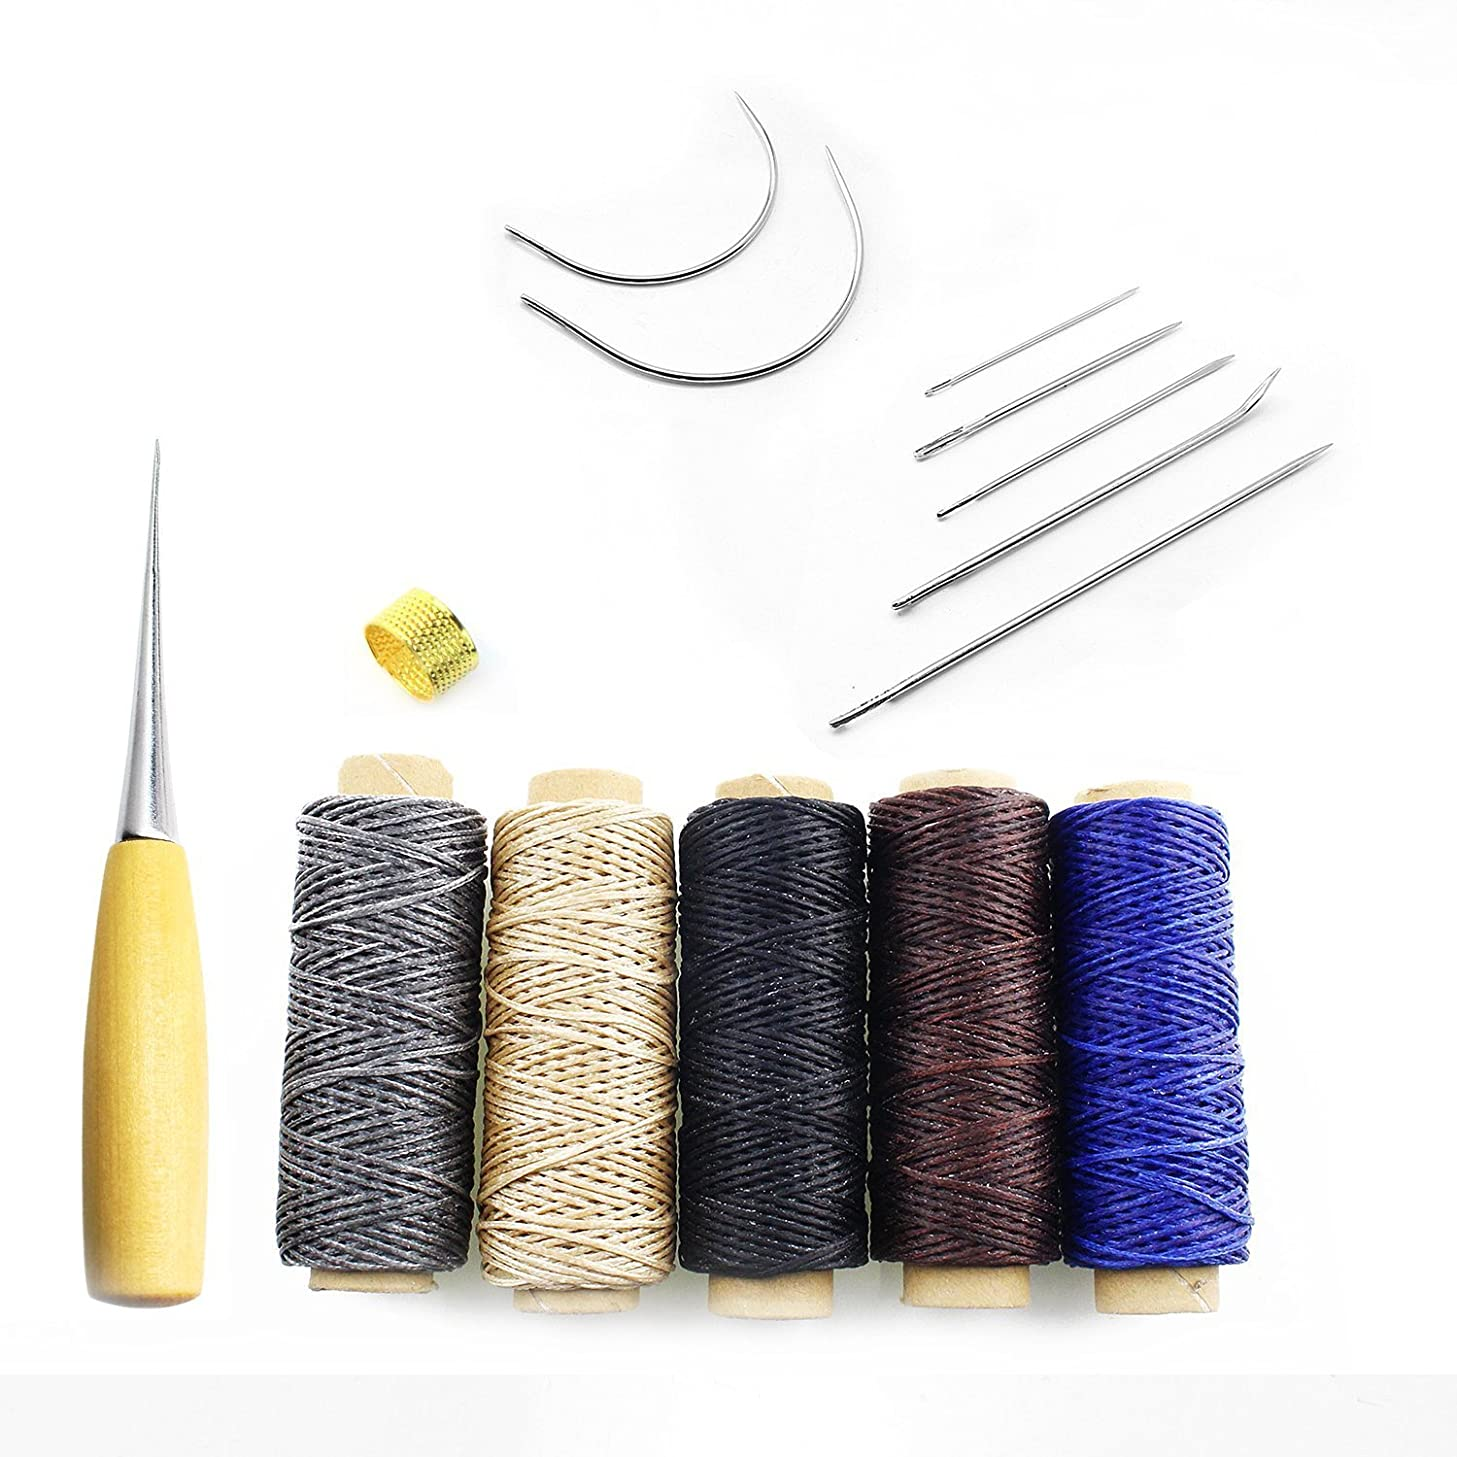 Sutemribor 14 Pieces Sewing Needles with Leather Waxed Thread Cord Drilling Awl and Thimble for Leather Repair